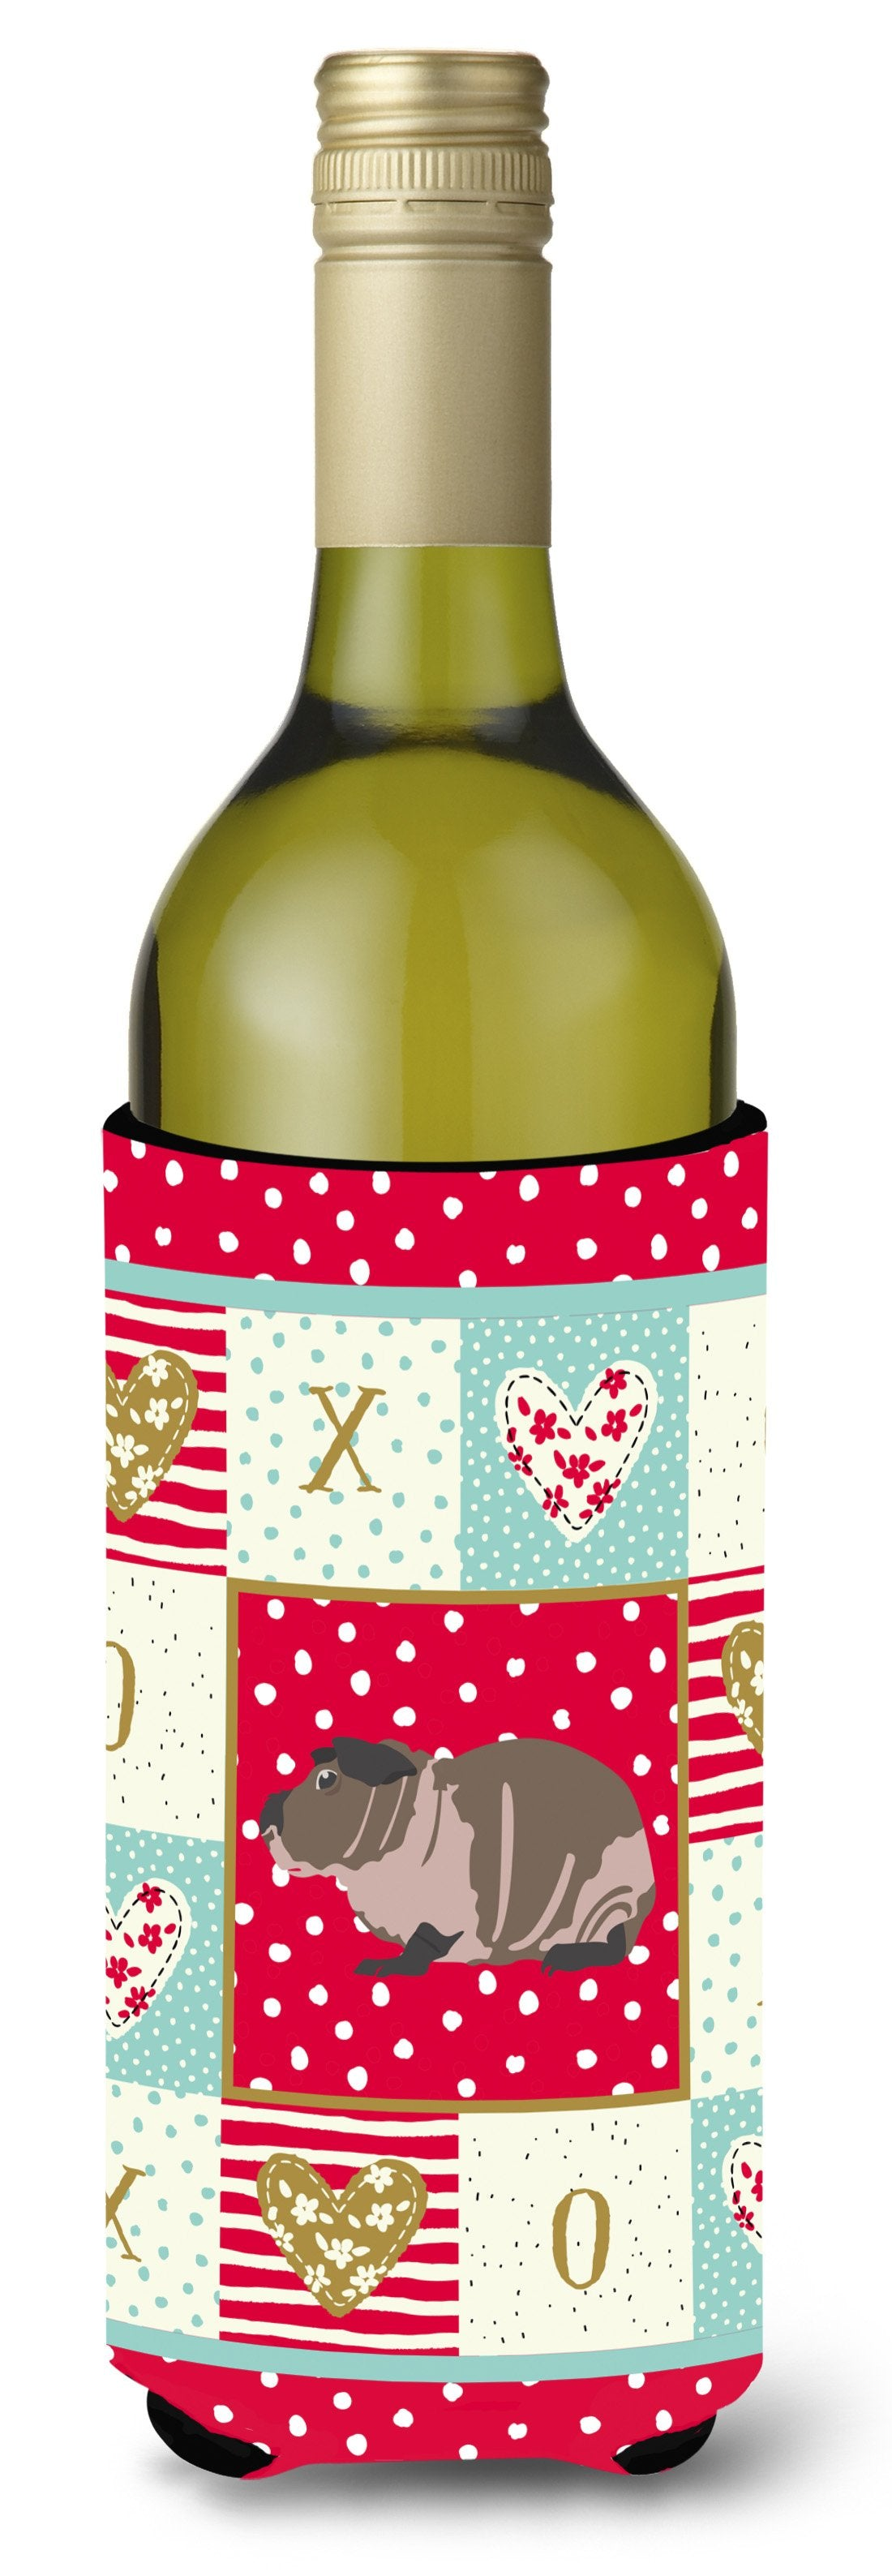 Skinny Guinea Pig Love Wine Bottle Hugger CK5435LITERK by Caroline's Treasures